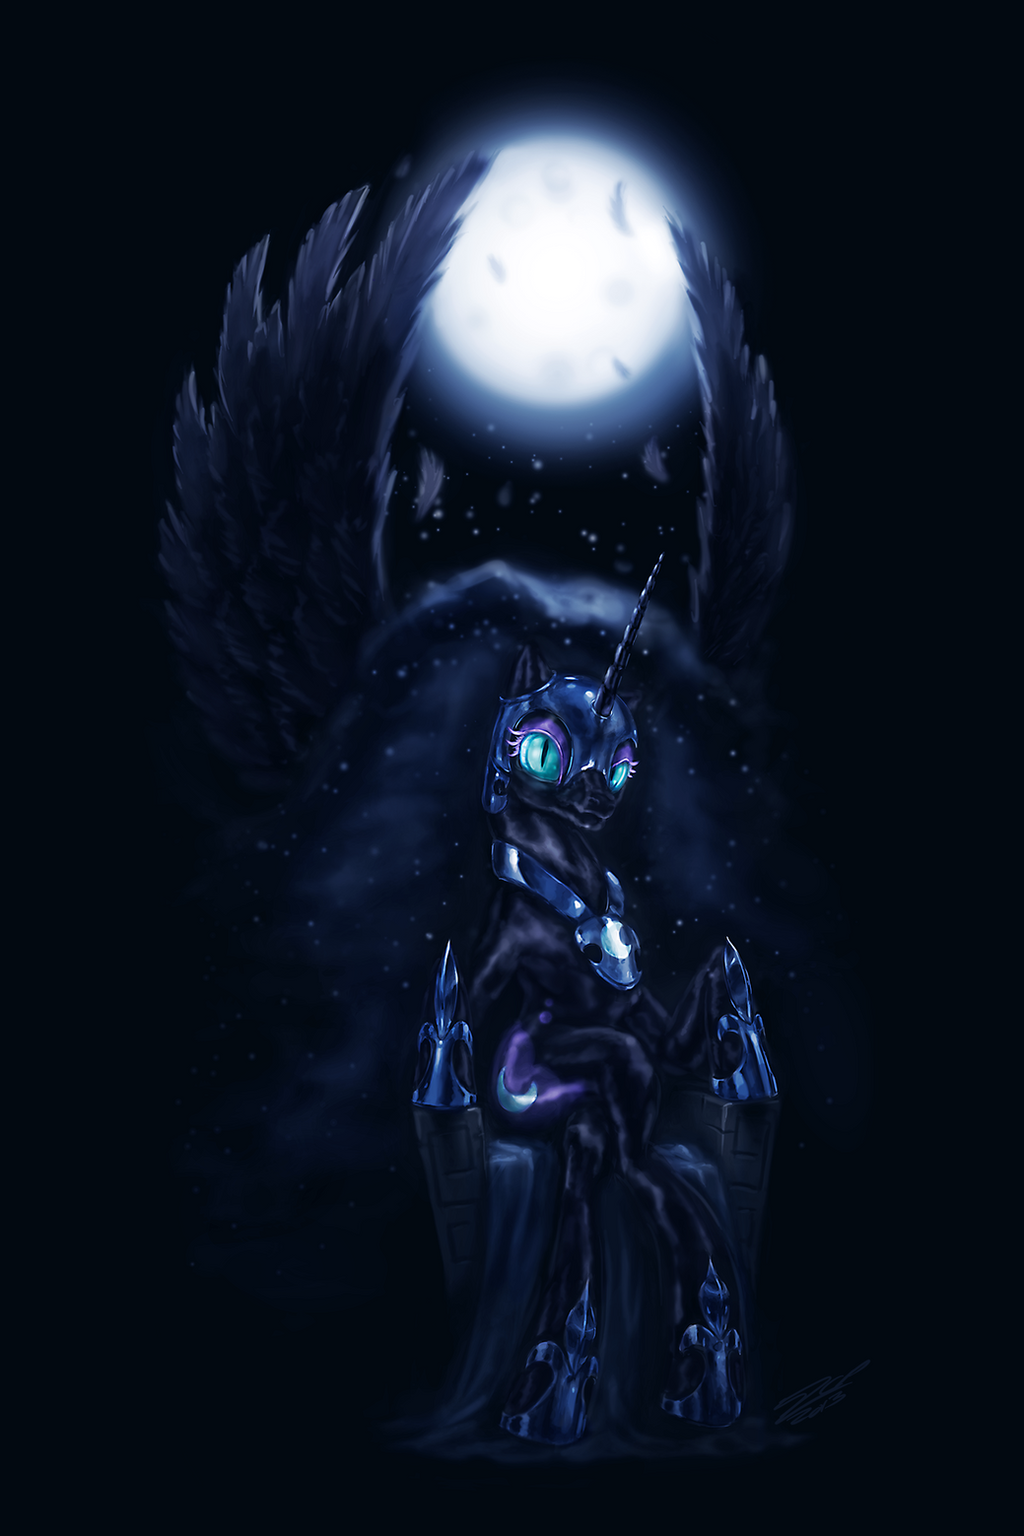 Seat of Darkness by AssasinMonkey